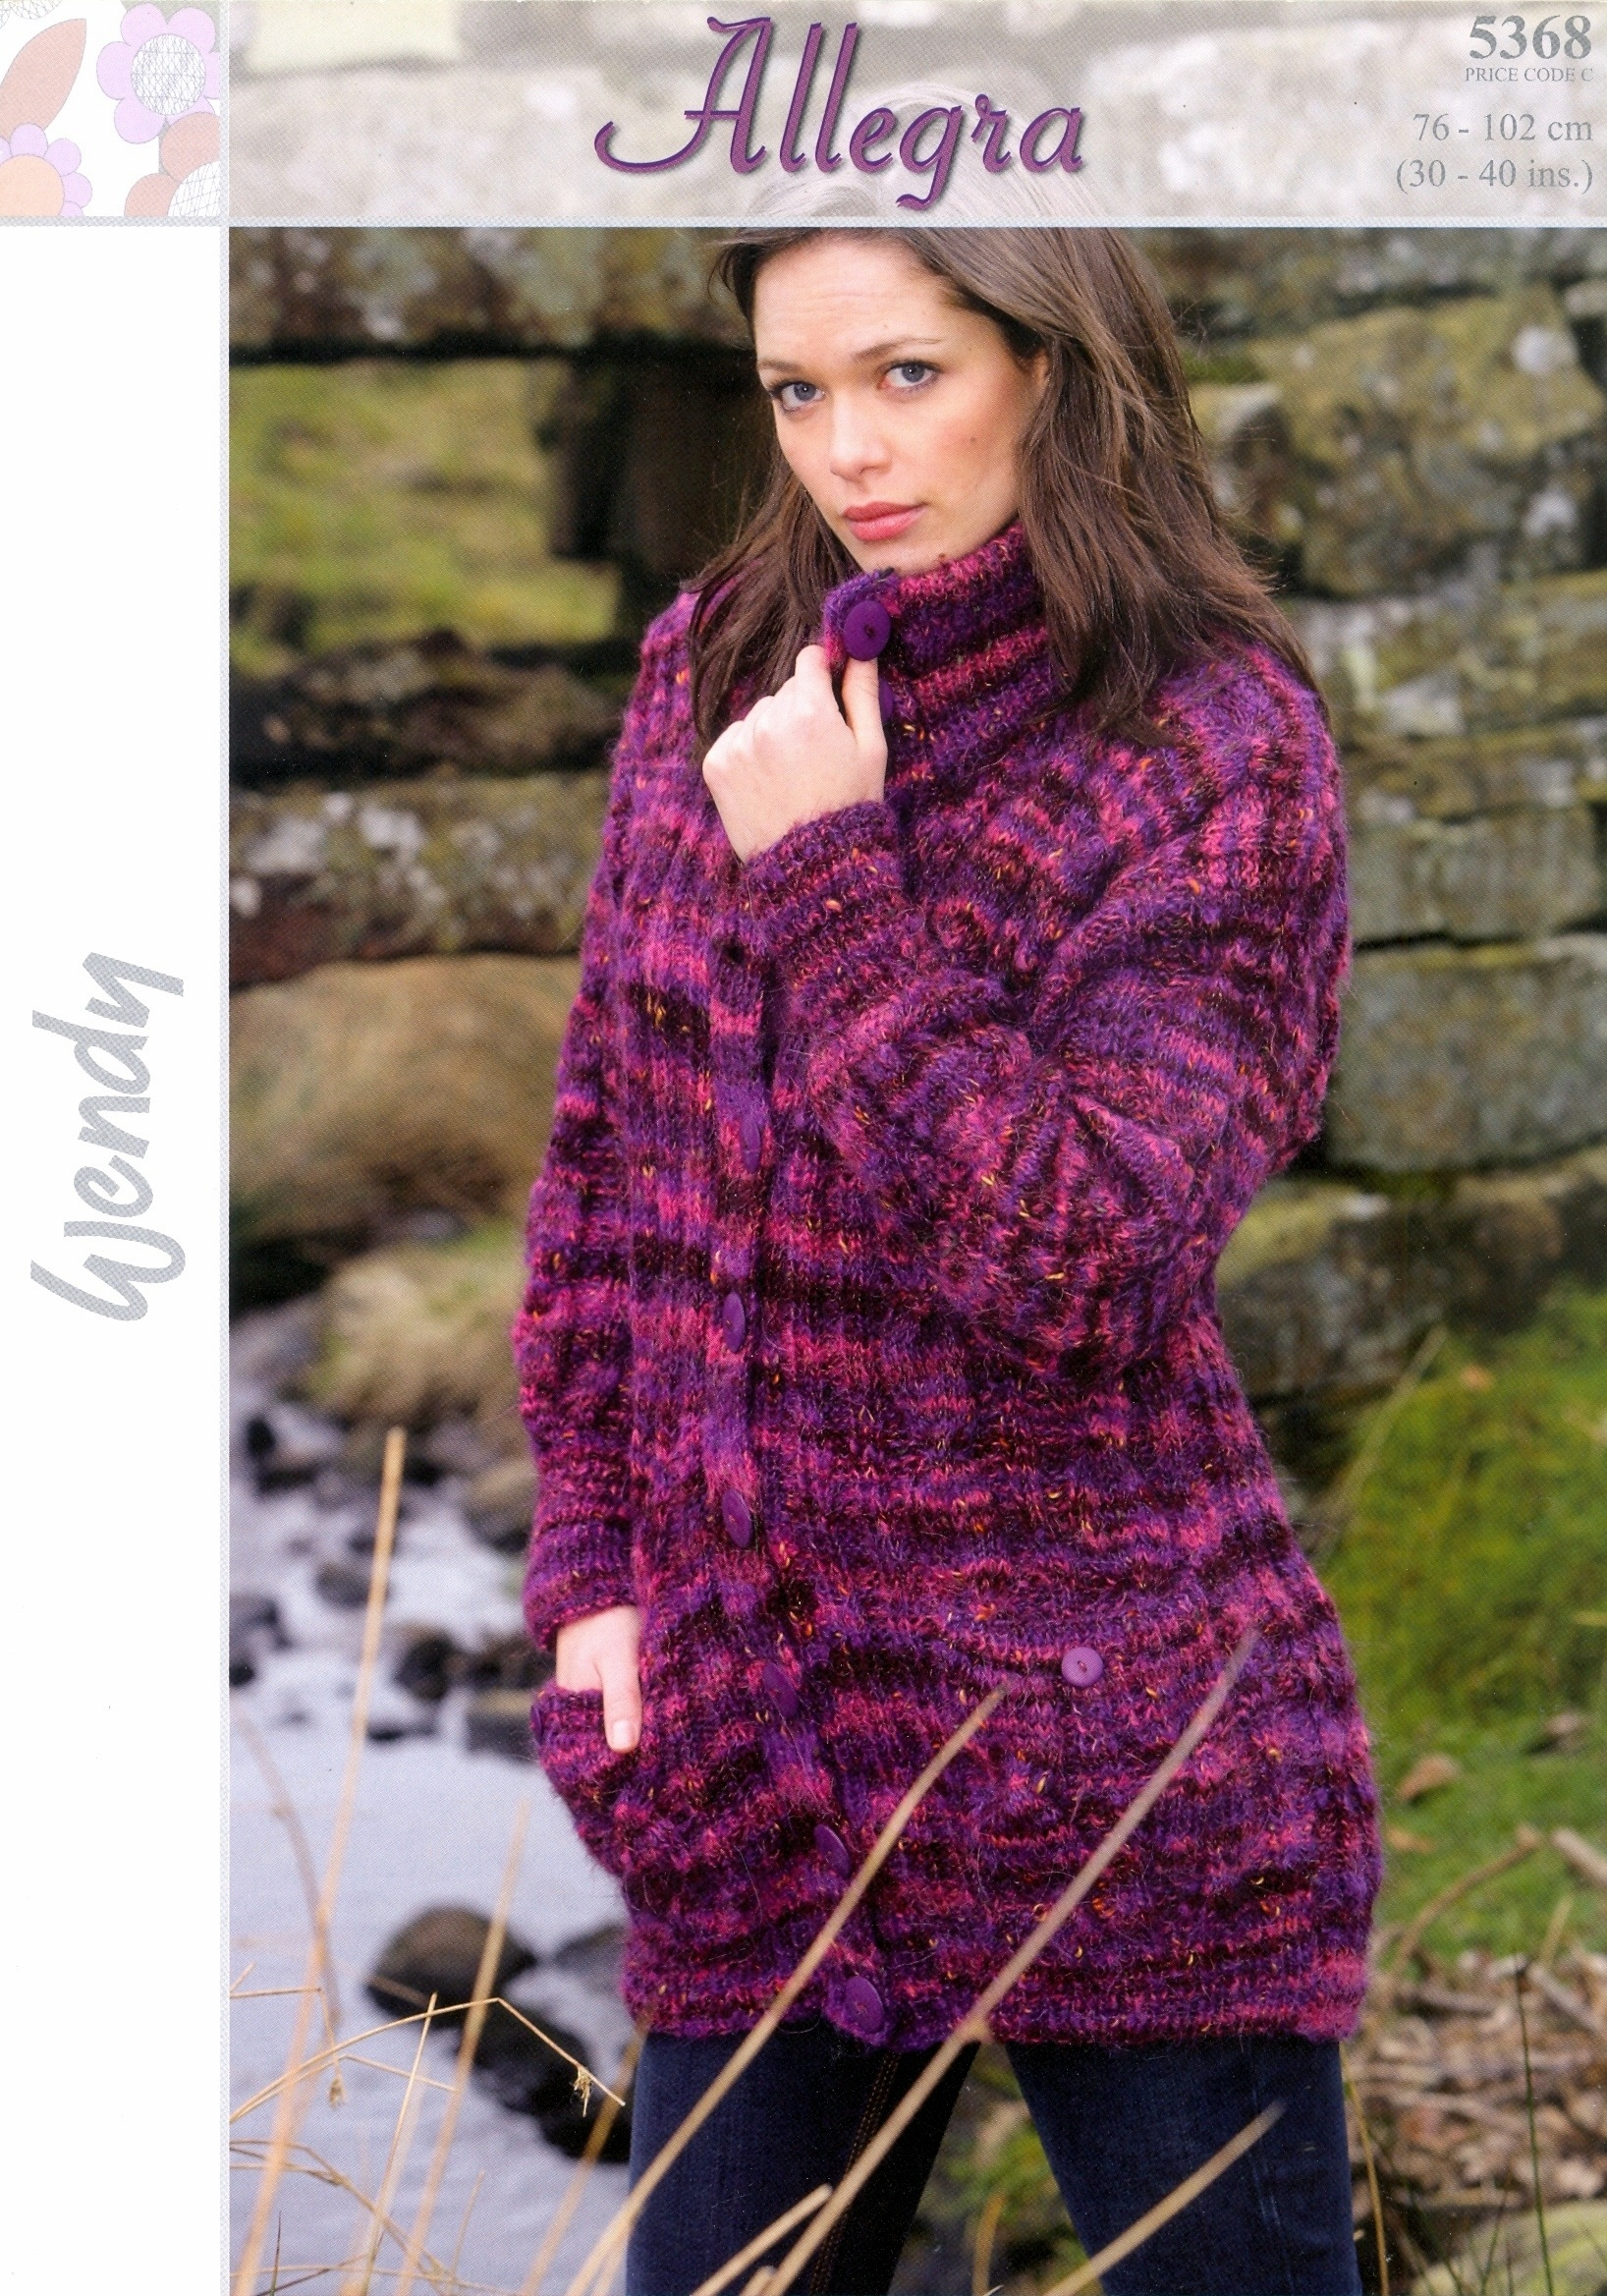 Knitting Pattern Ladys Allegra Long Jacket With Pockets To Knit Wendy 53...